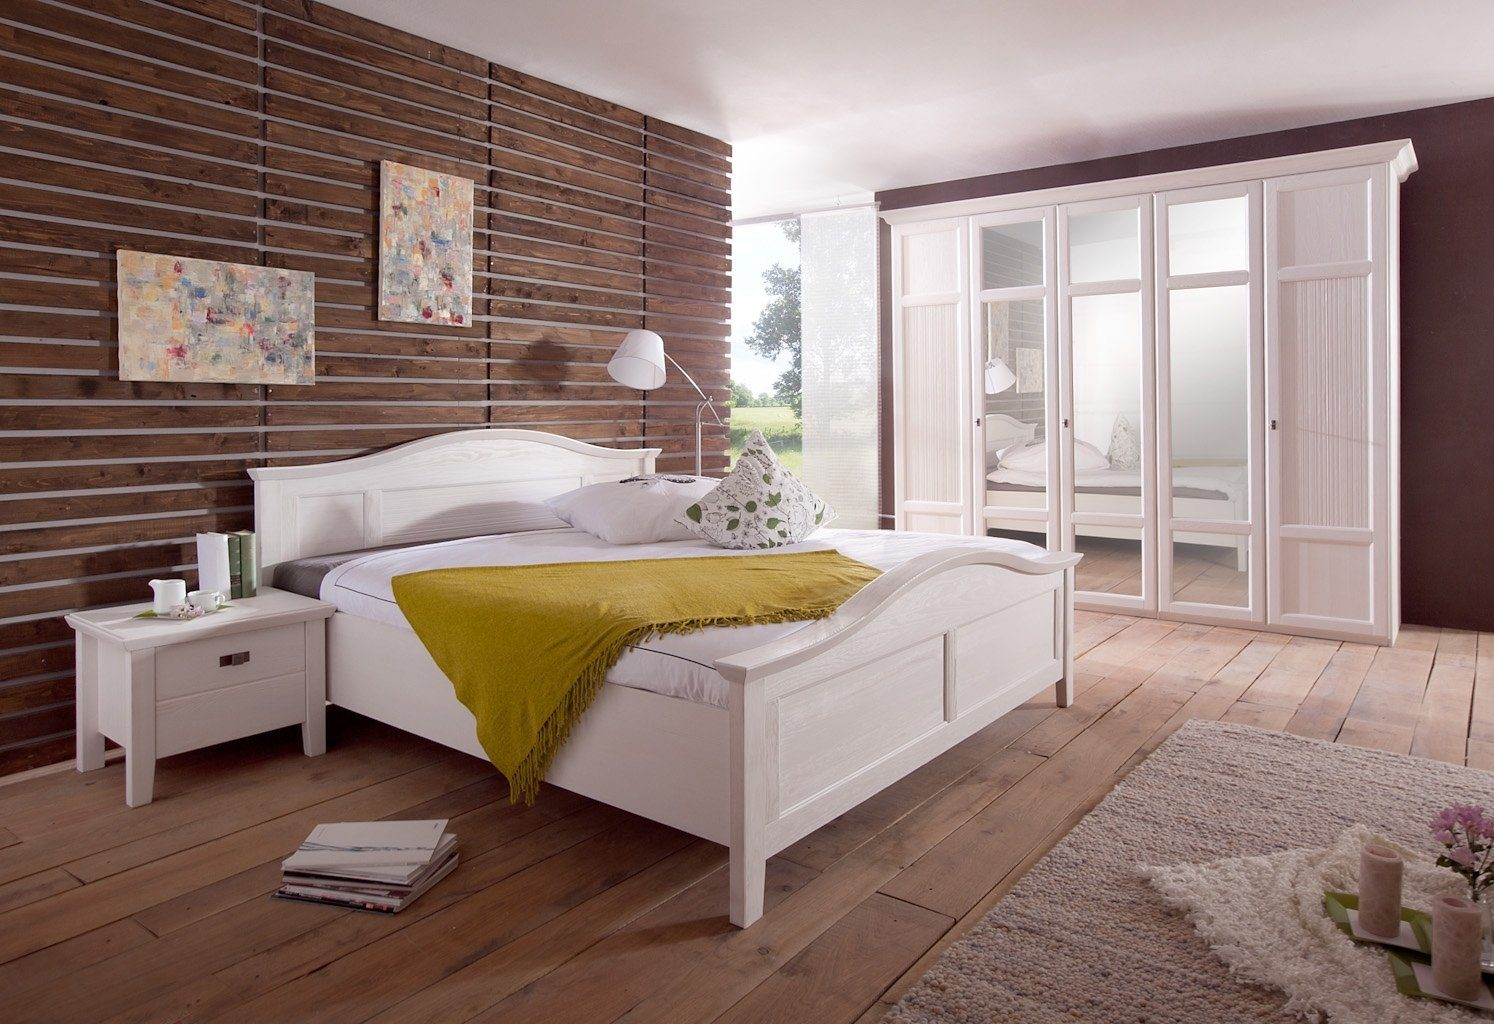 Home Affaire Komplett Schlafzimmer Premium Collection By Home Affaire Schlafzimmer-set »casa ...